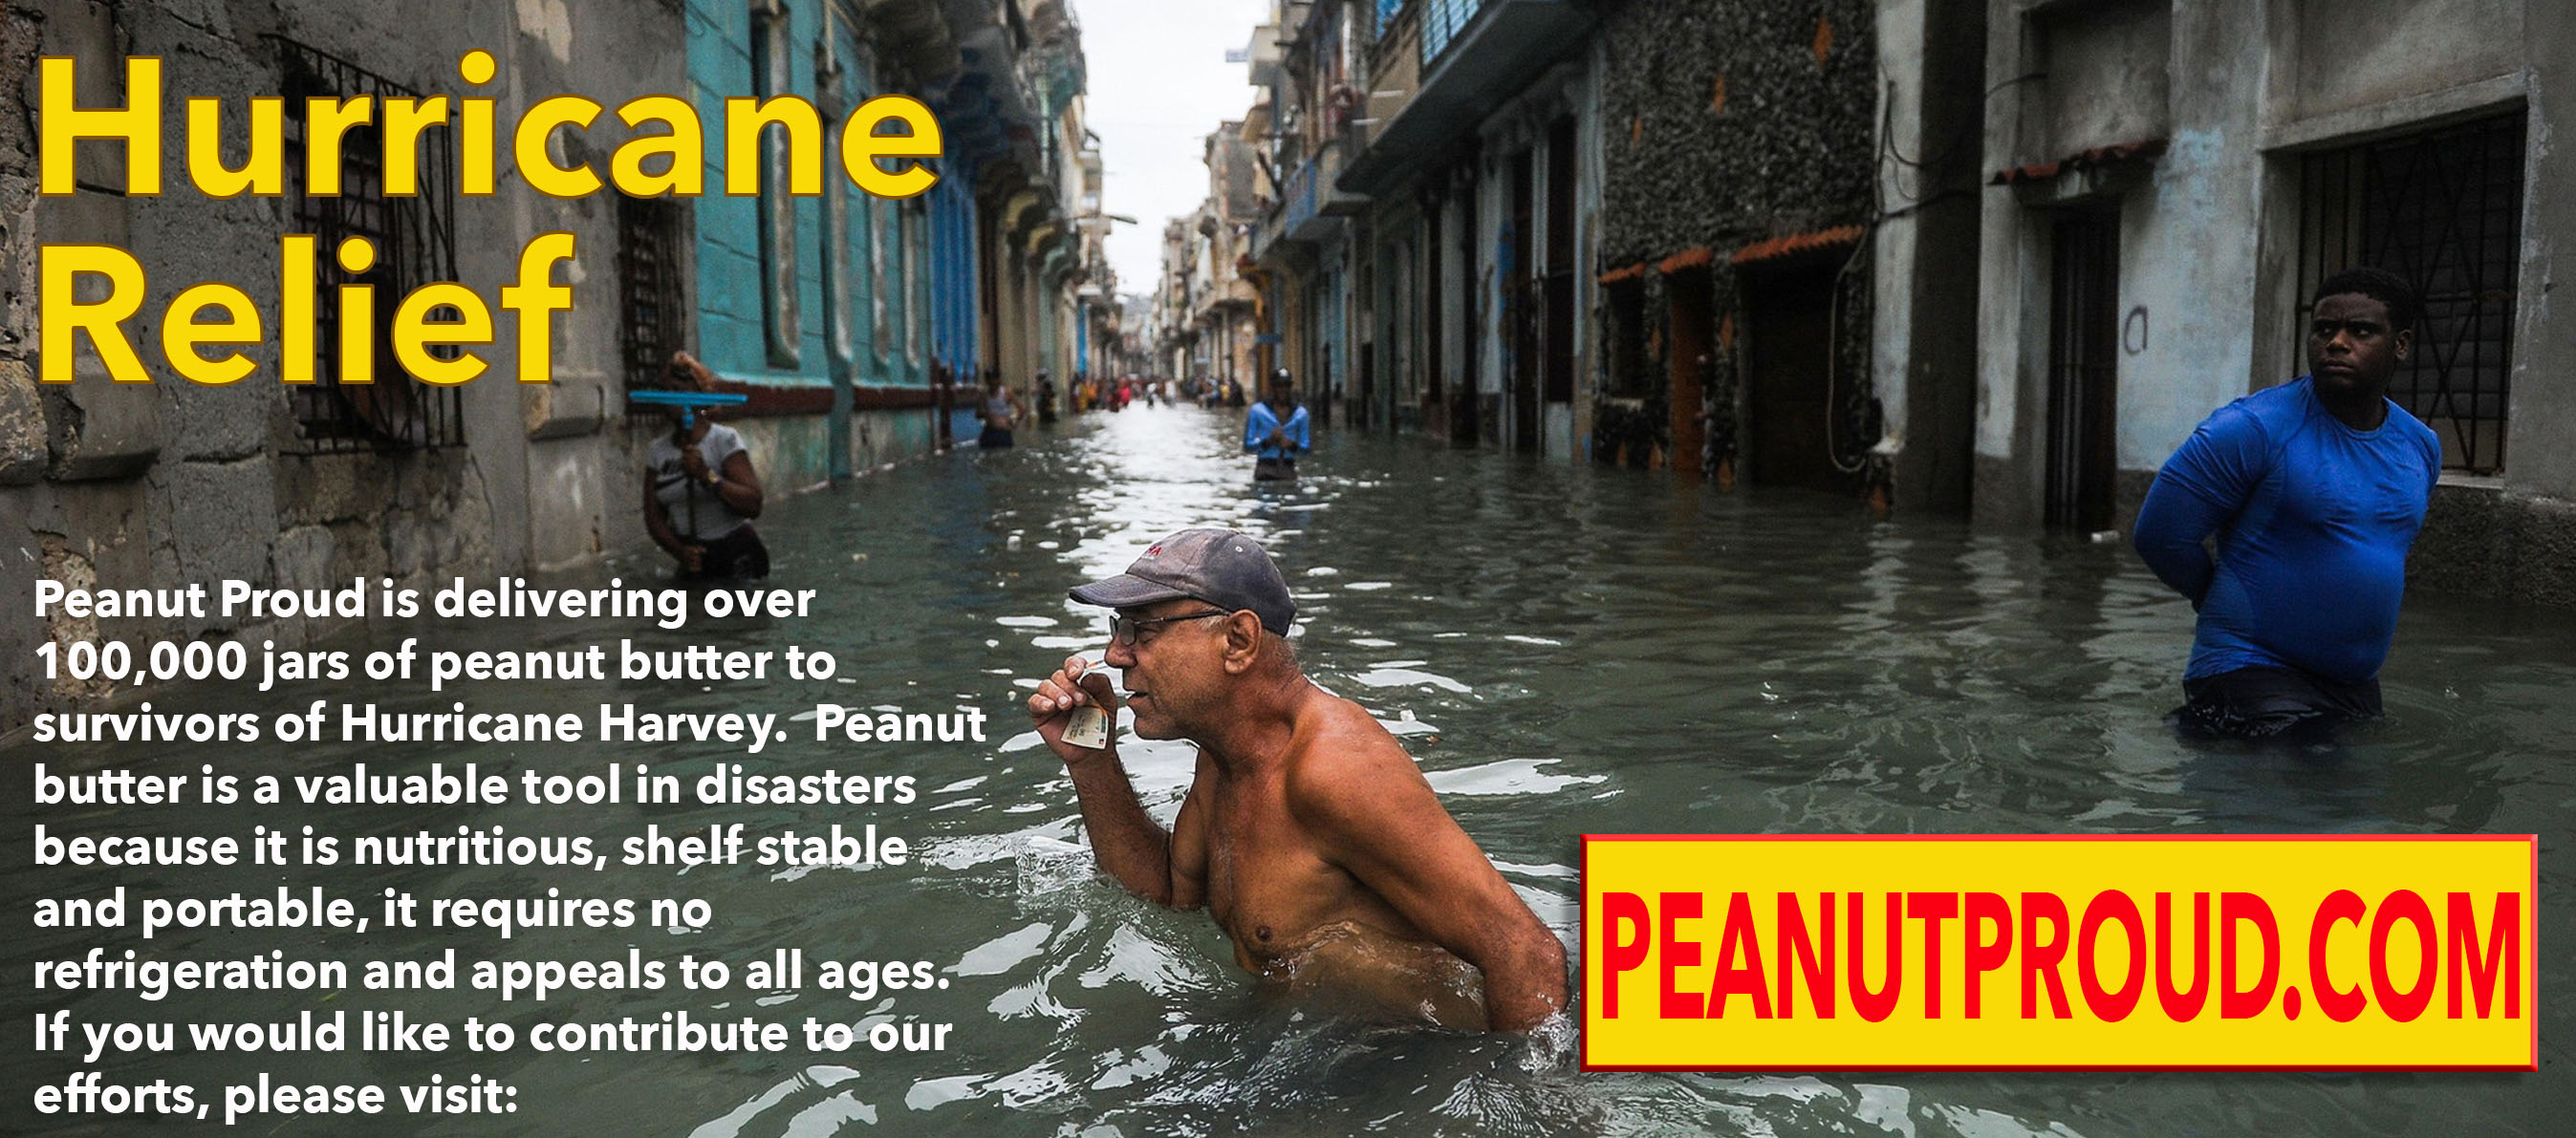 Peanut Proud Hurricane Harvey